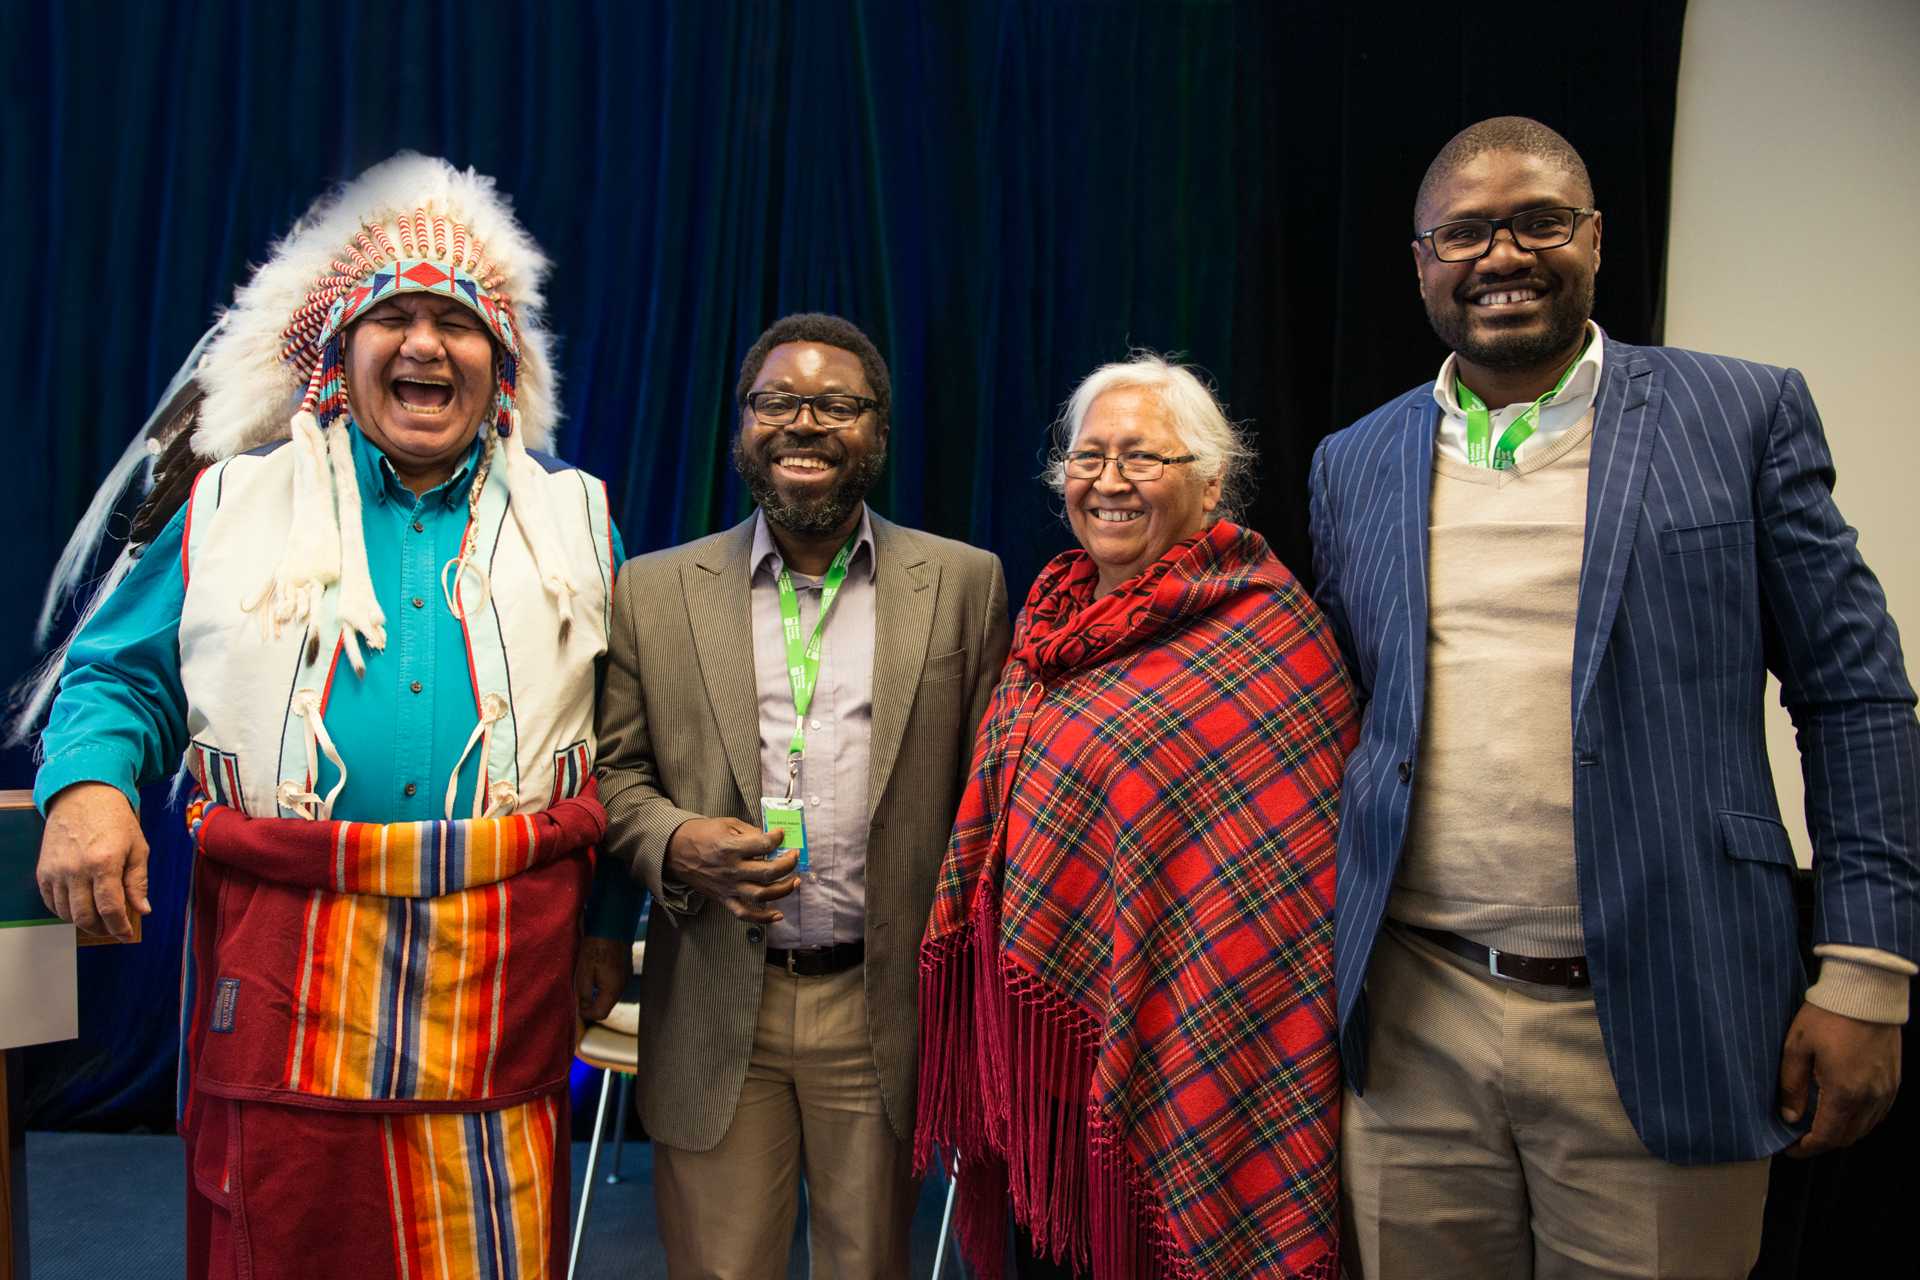 Nigerian delegates enjoy a moment with Blackfoot elders Dr. Reg Crow Shoe and Rose Crow Shoe.